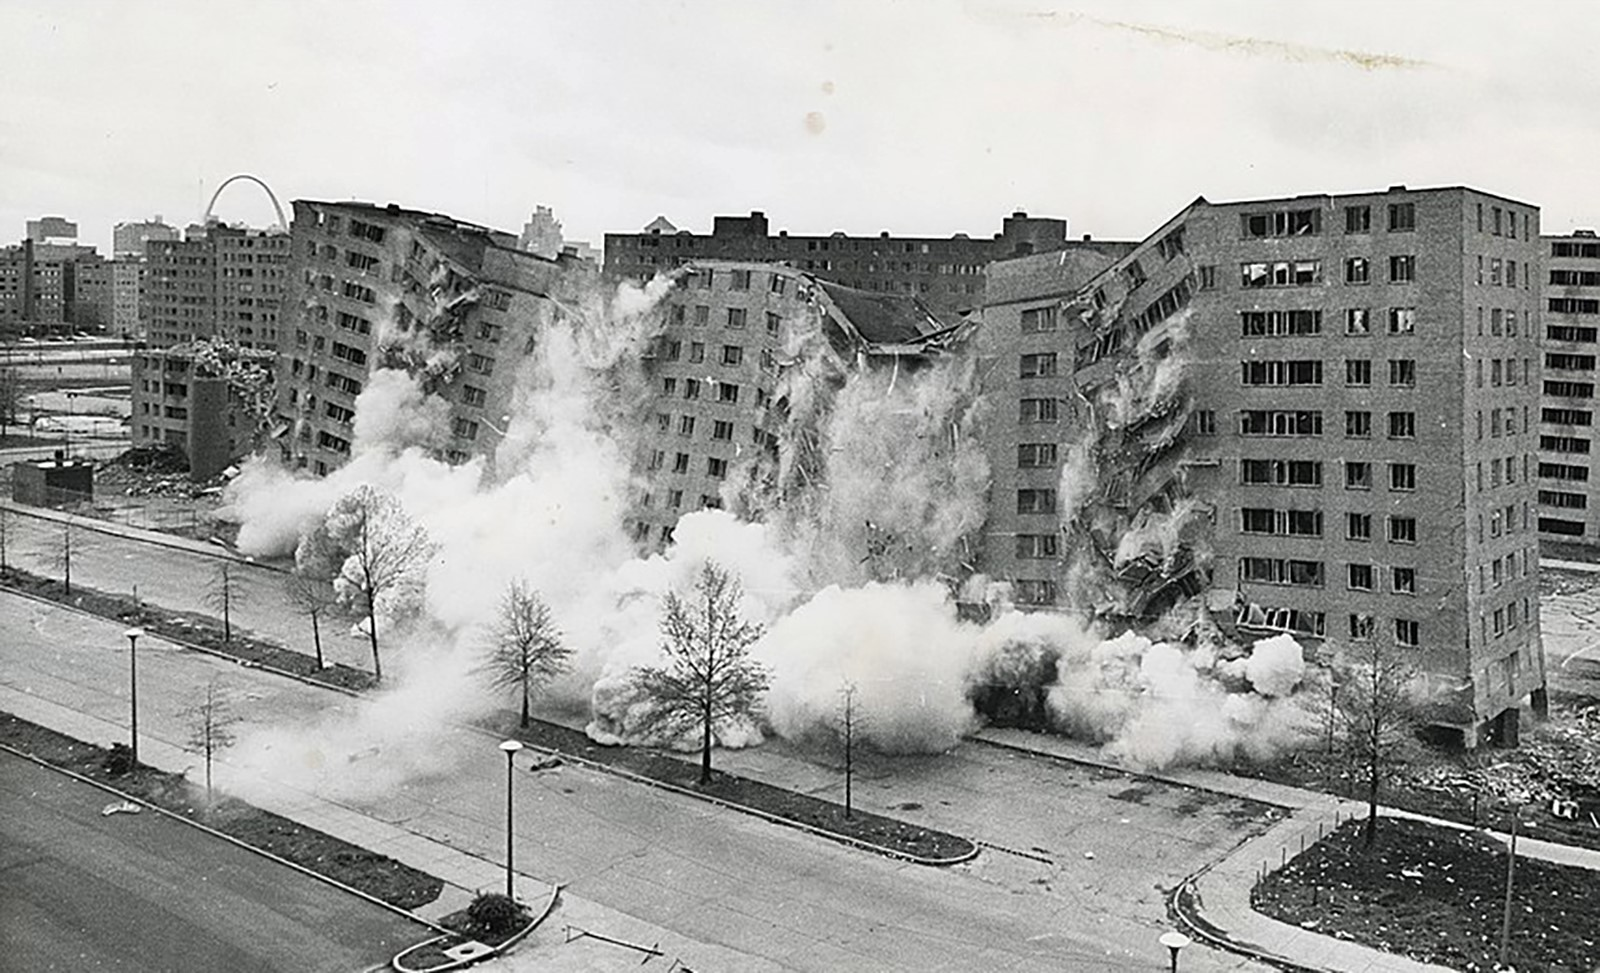 Tall buildings photographed in the midst of demolition, surrounded by billowing smoke.